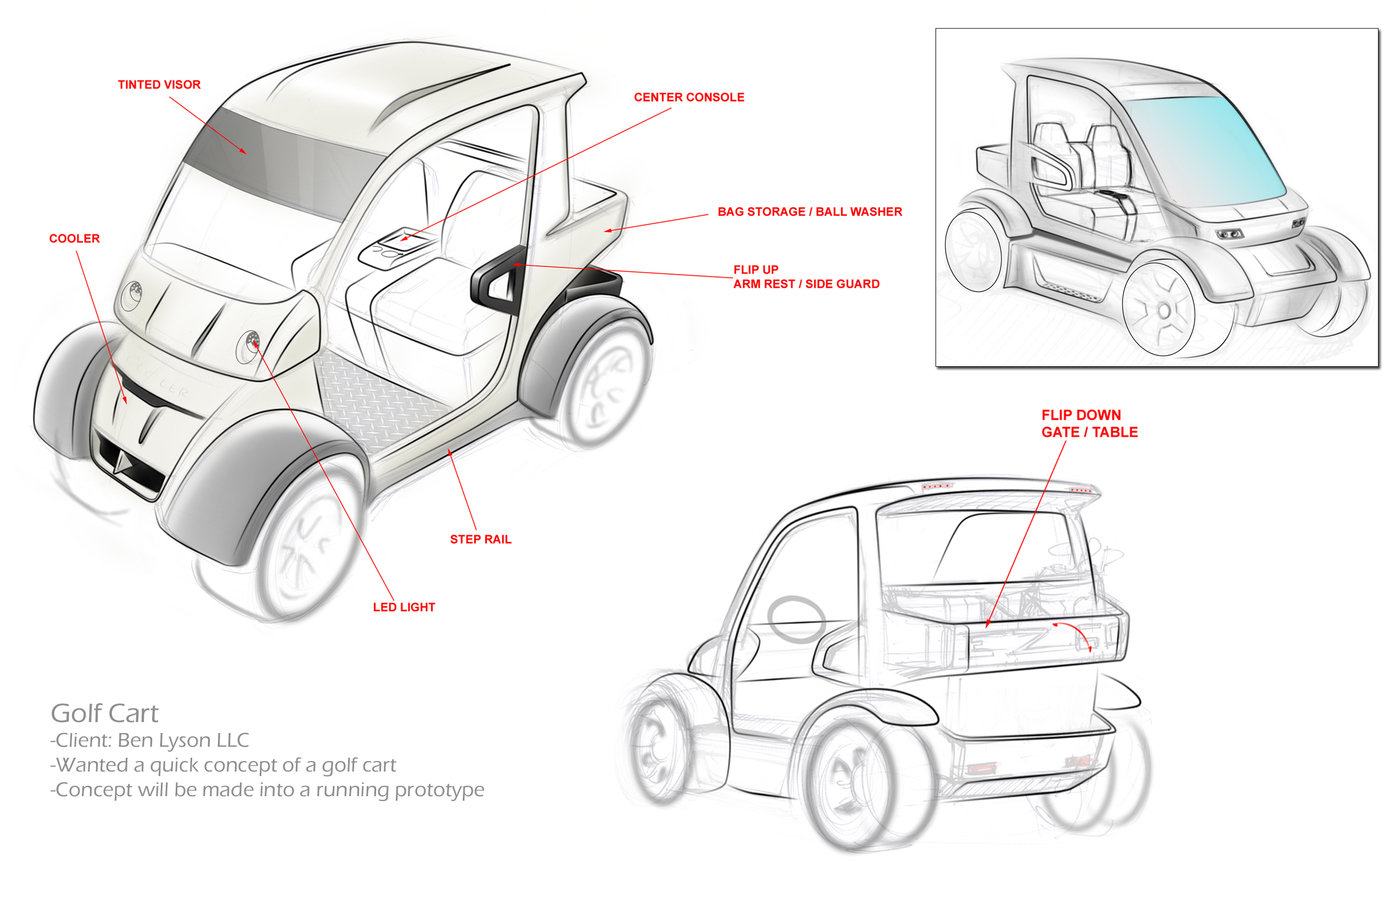 Lyson Llc Golf Cart By Phil Hall Mba At Coroflot